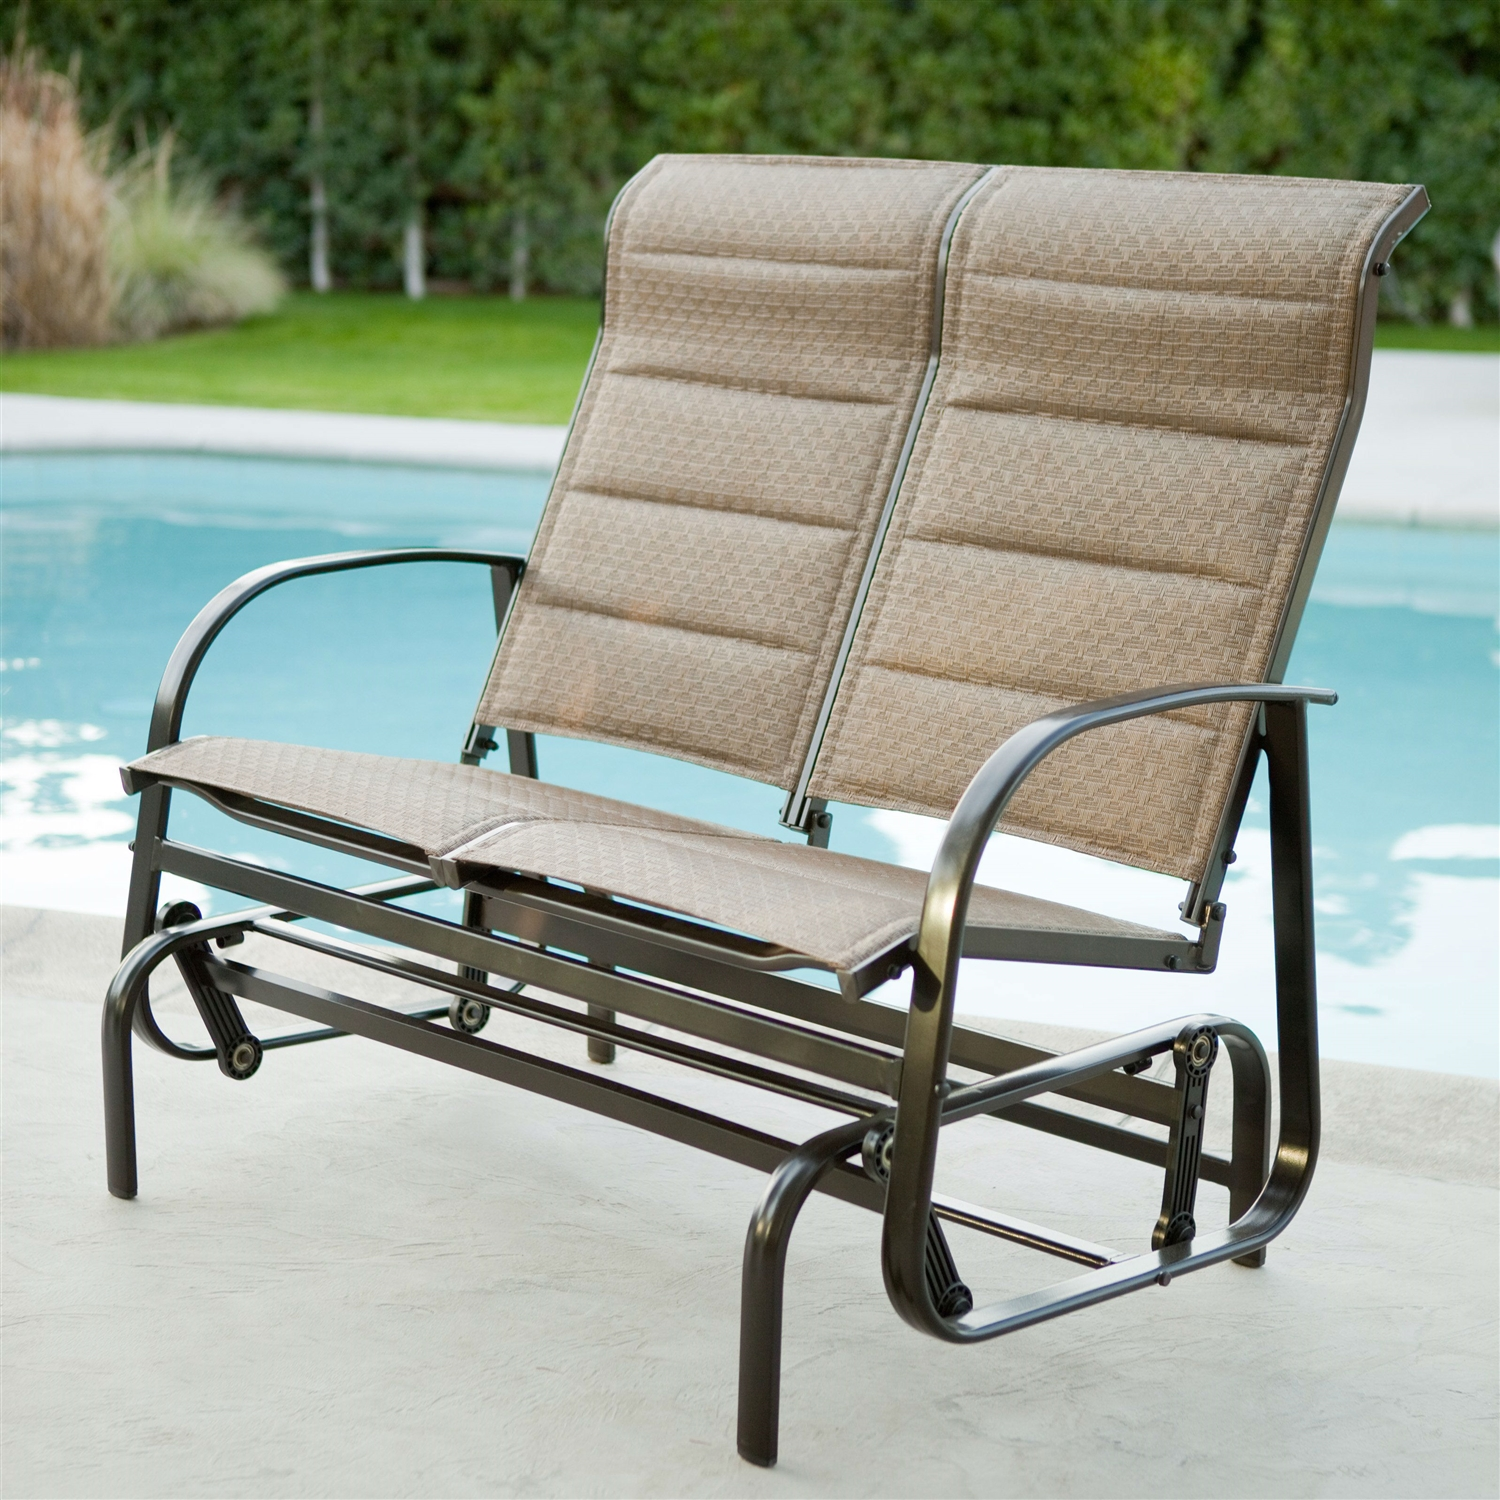 Weatherproof Outdoor Loveseat Glider Chair with Padded Sling Seats